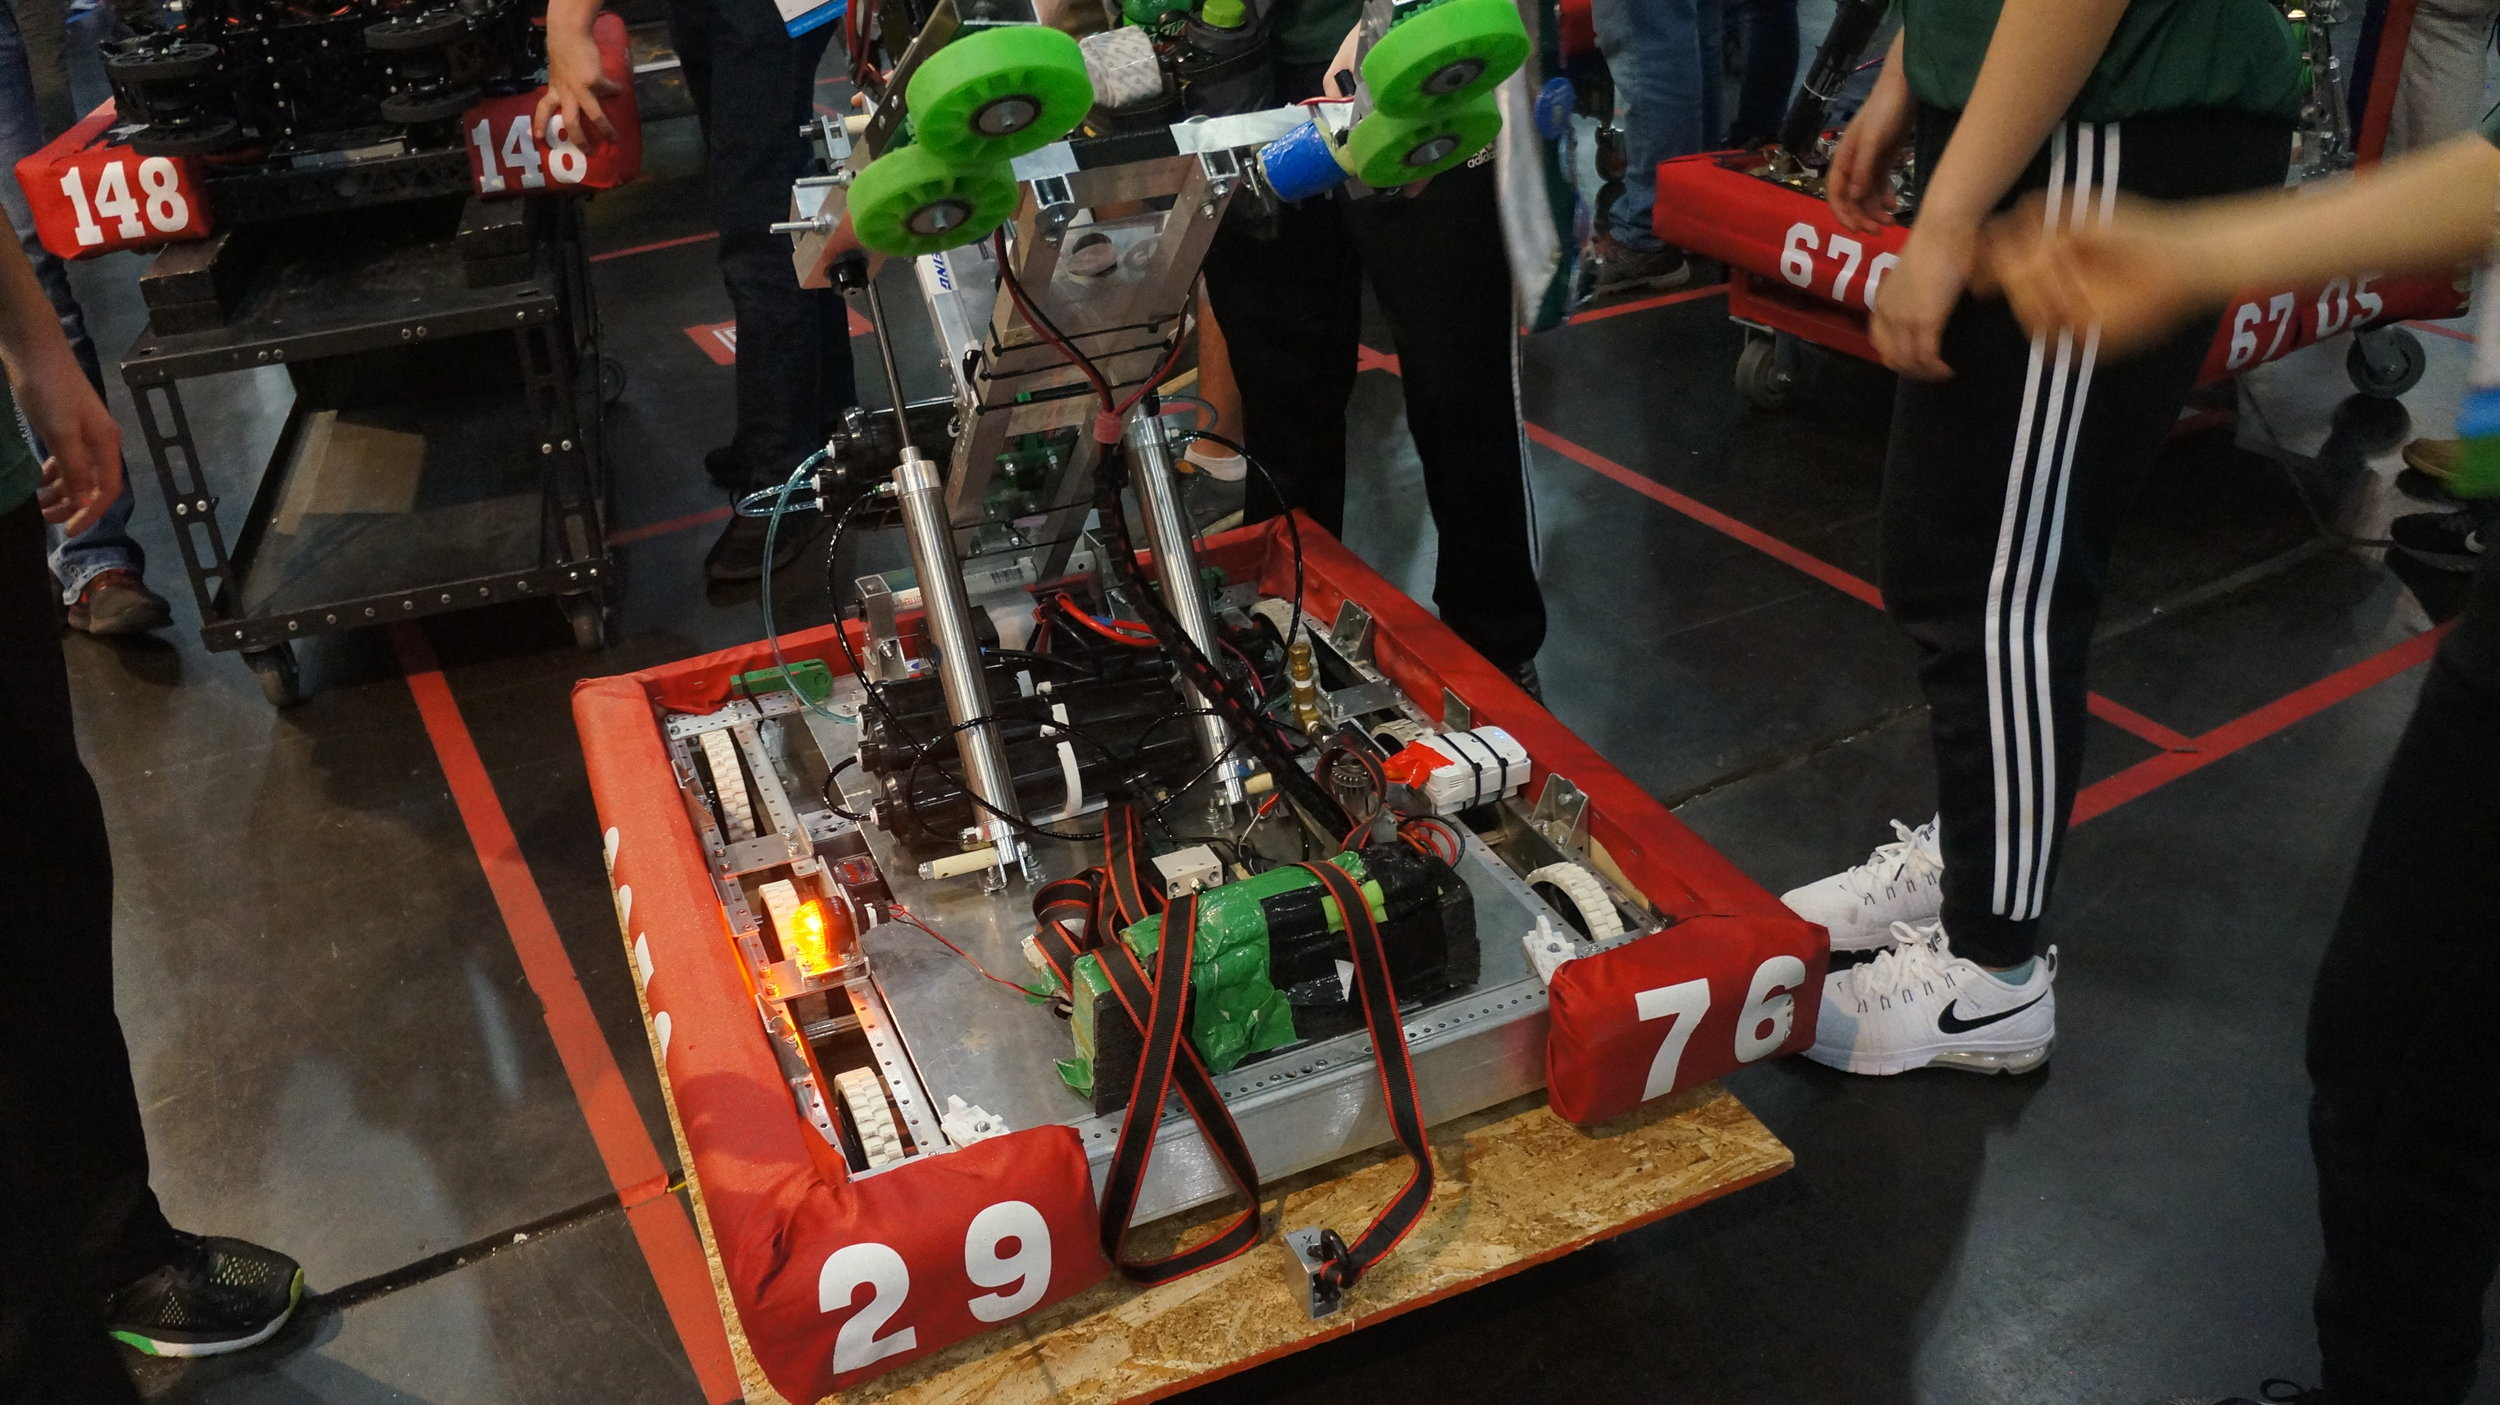 The robot used at the championship